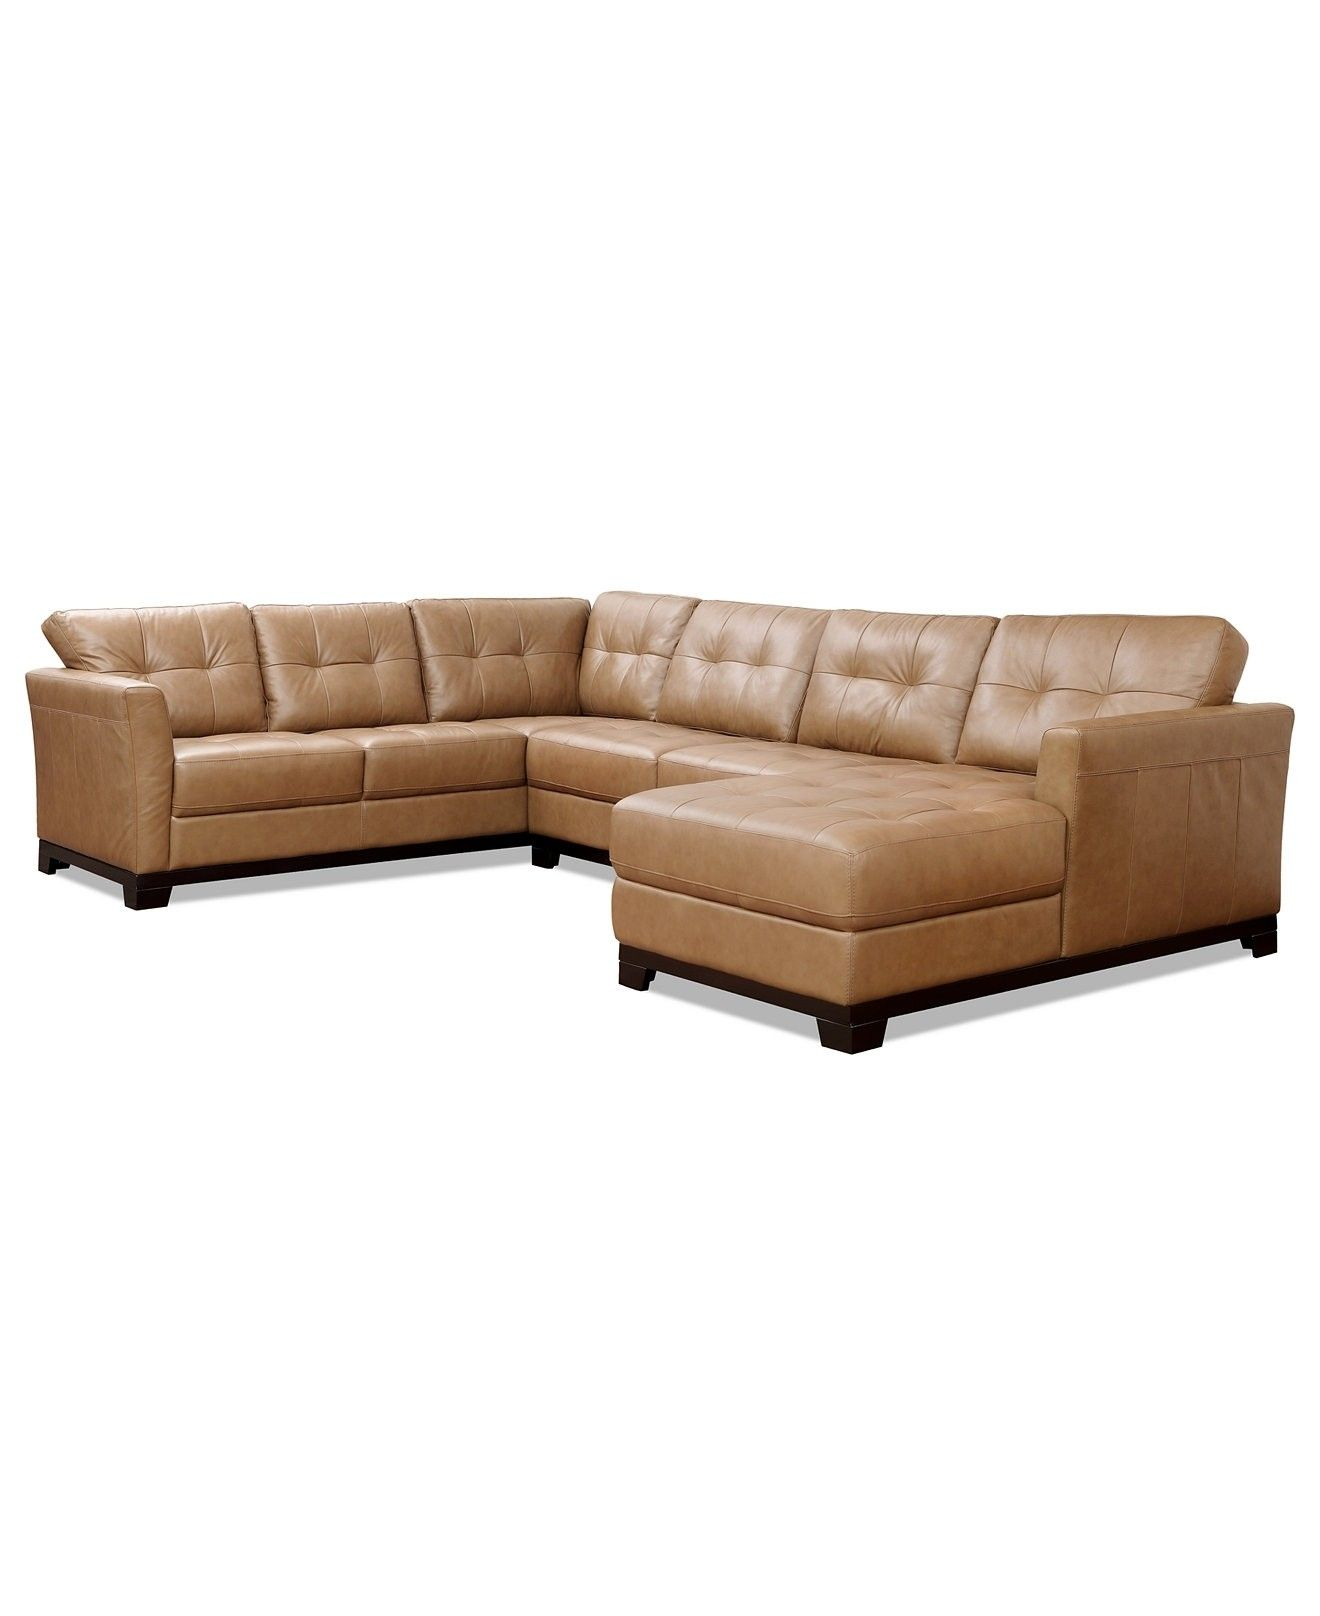 Awesome Macys Leather Sectional Sofa Leather S Macy S Milano Brown Sectional Leat Leather Sectional Living Room Leather Sectional Sofas Sectional Sofa Couch